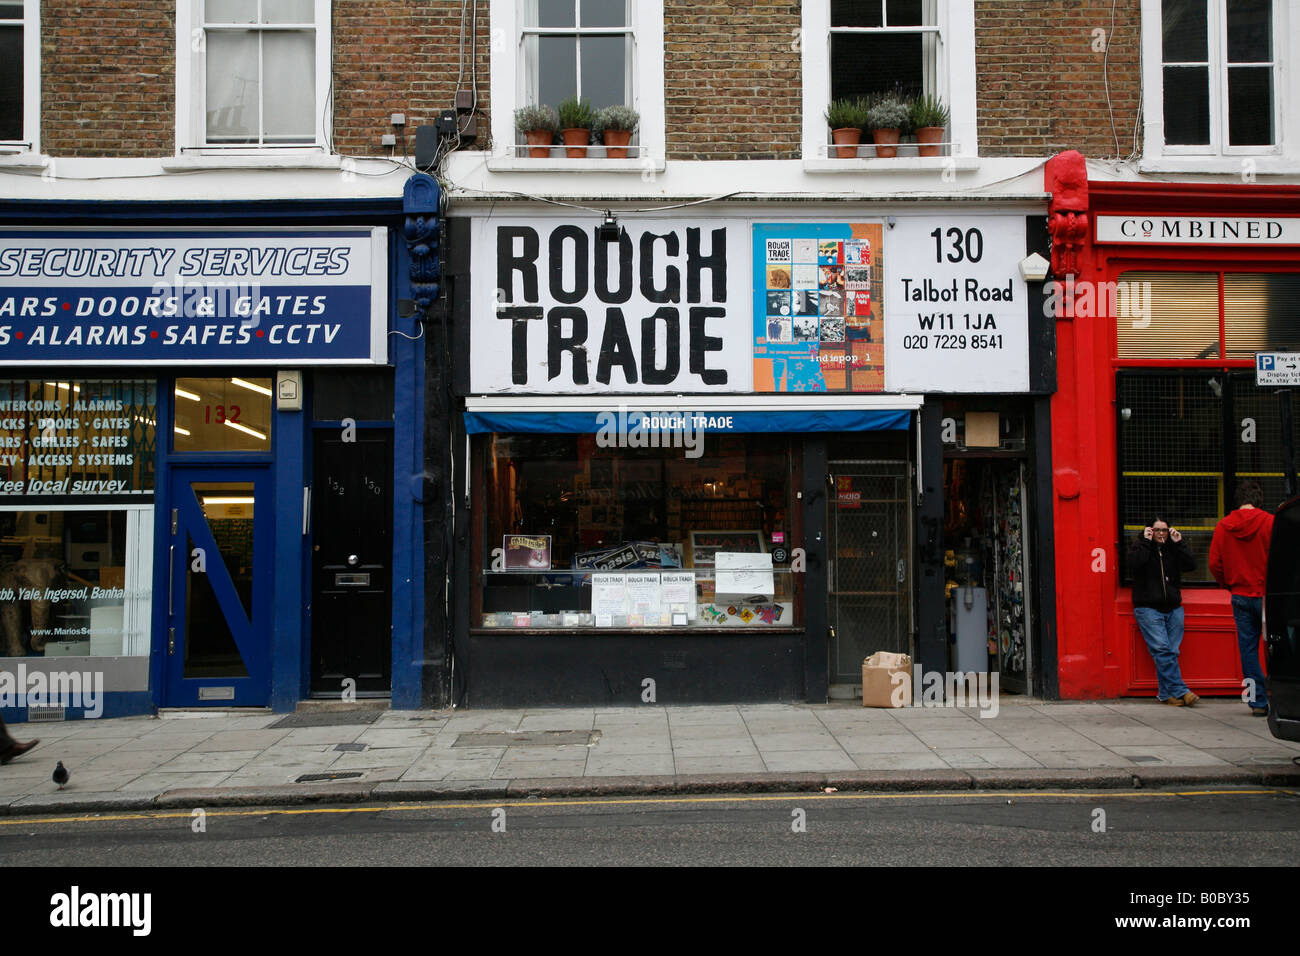 Rough Trade music shop on Talbot Road, Notting Hill, London - Stock Image